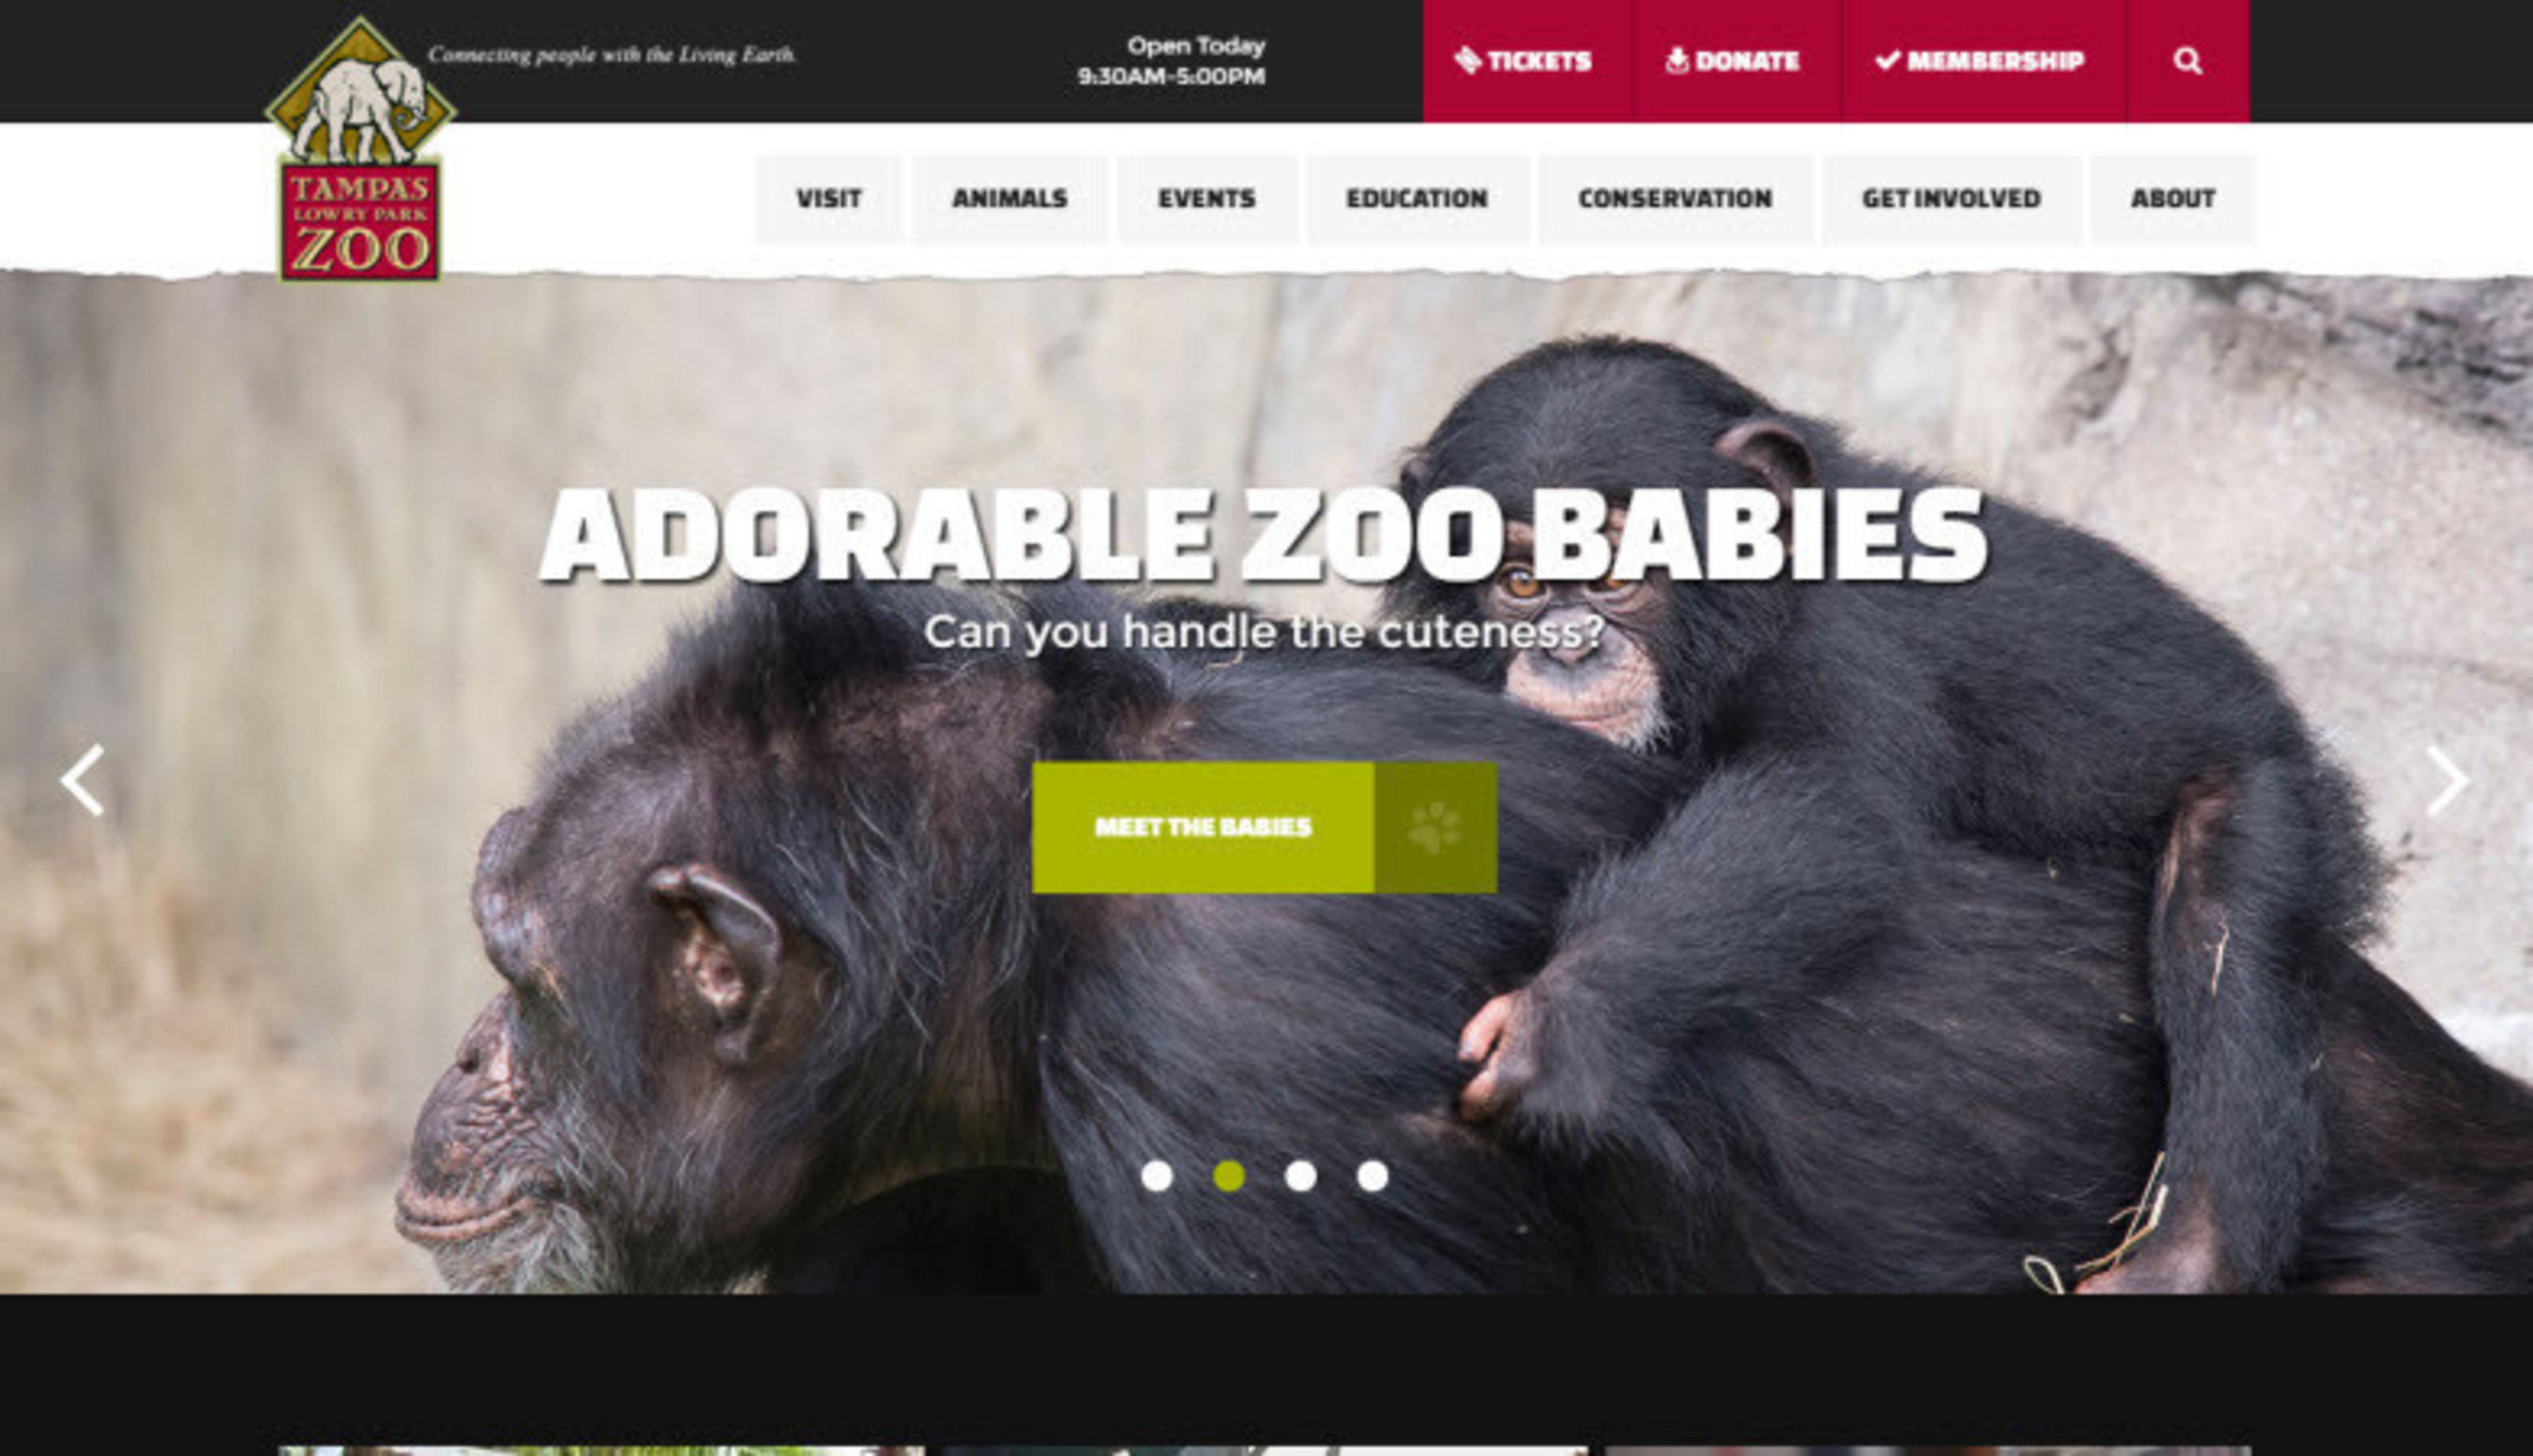 Roger West Announces That Tampa's Lowry Park Zoo Wins Telerik Sitefinity 2015 Website of the Year Award